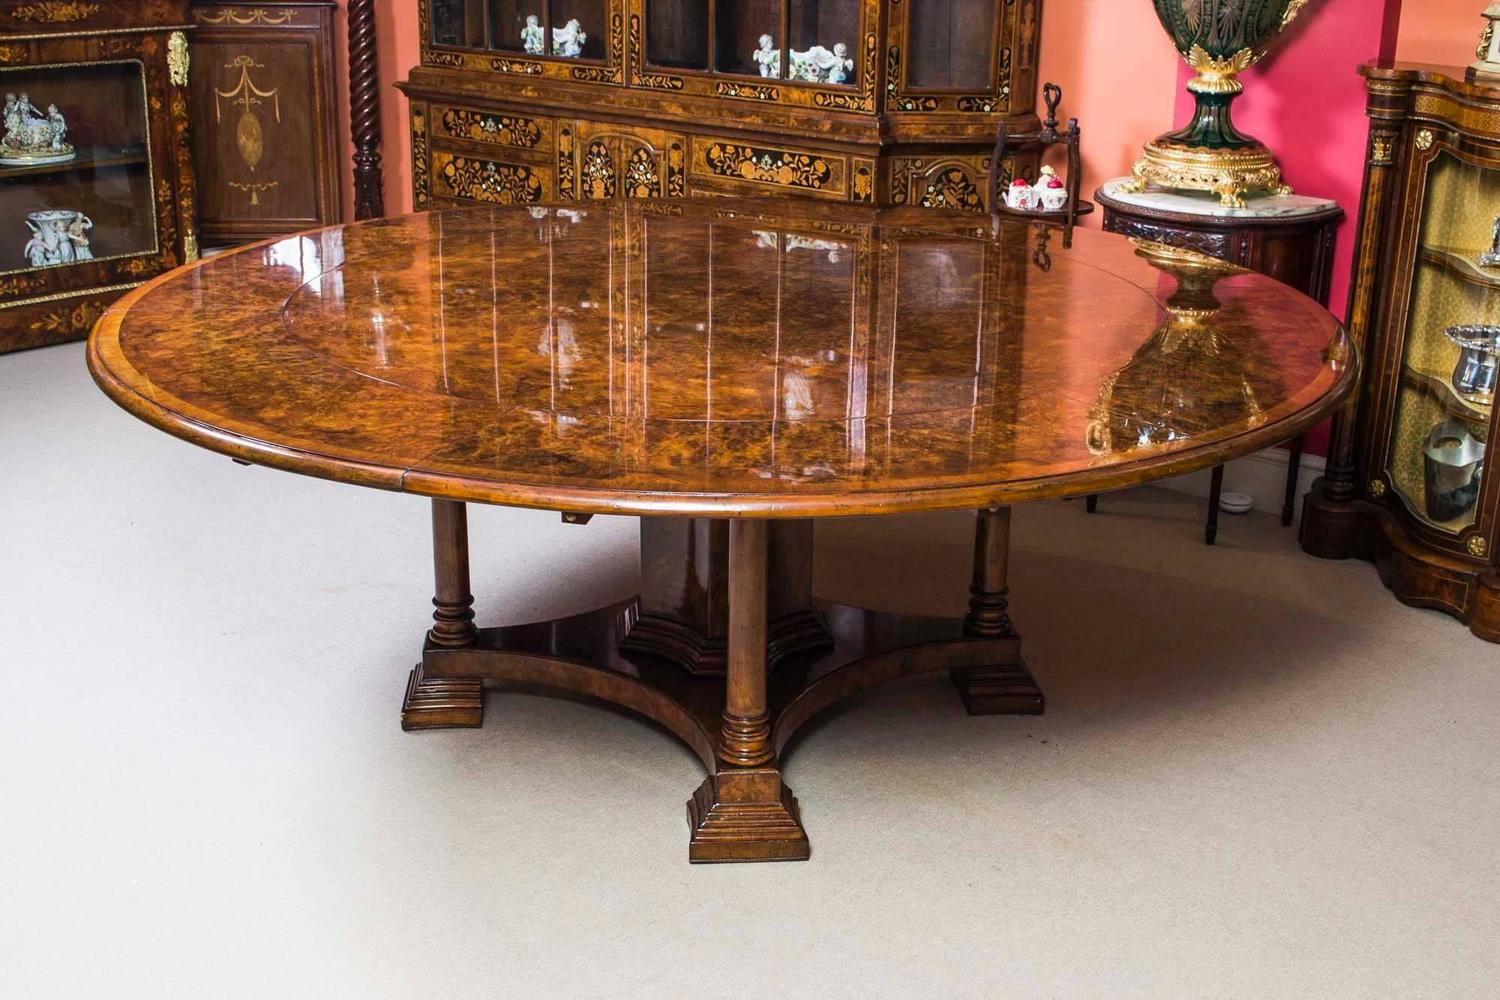 Stunning burr walnut jupe dining table for sale at 1stdibs for 10 ft dining table sale